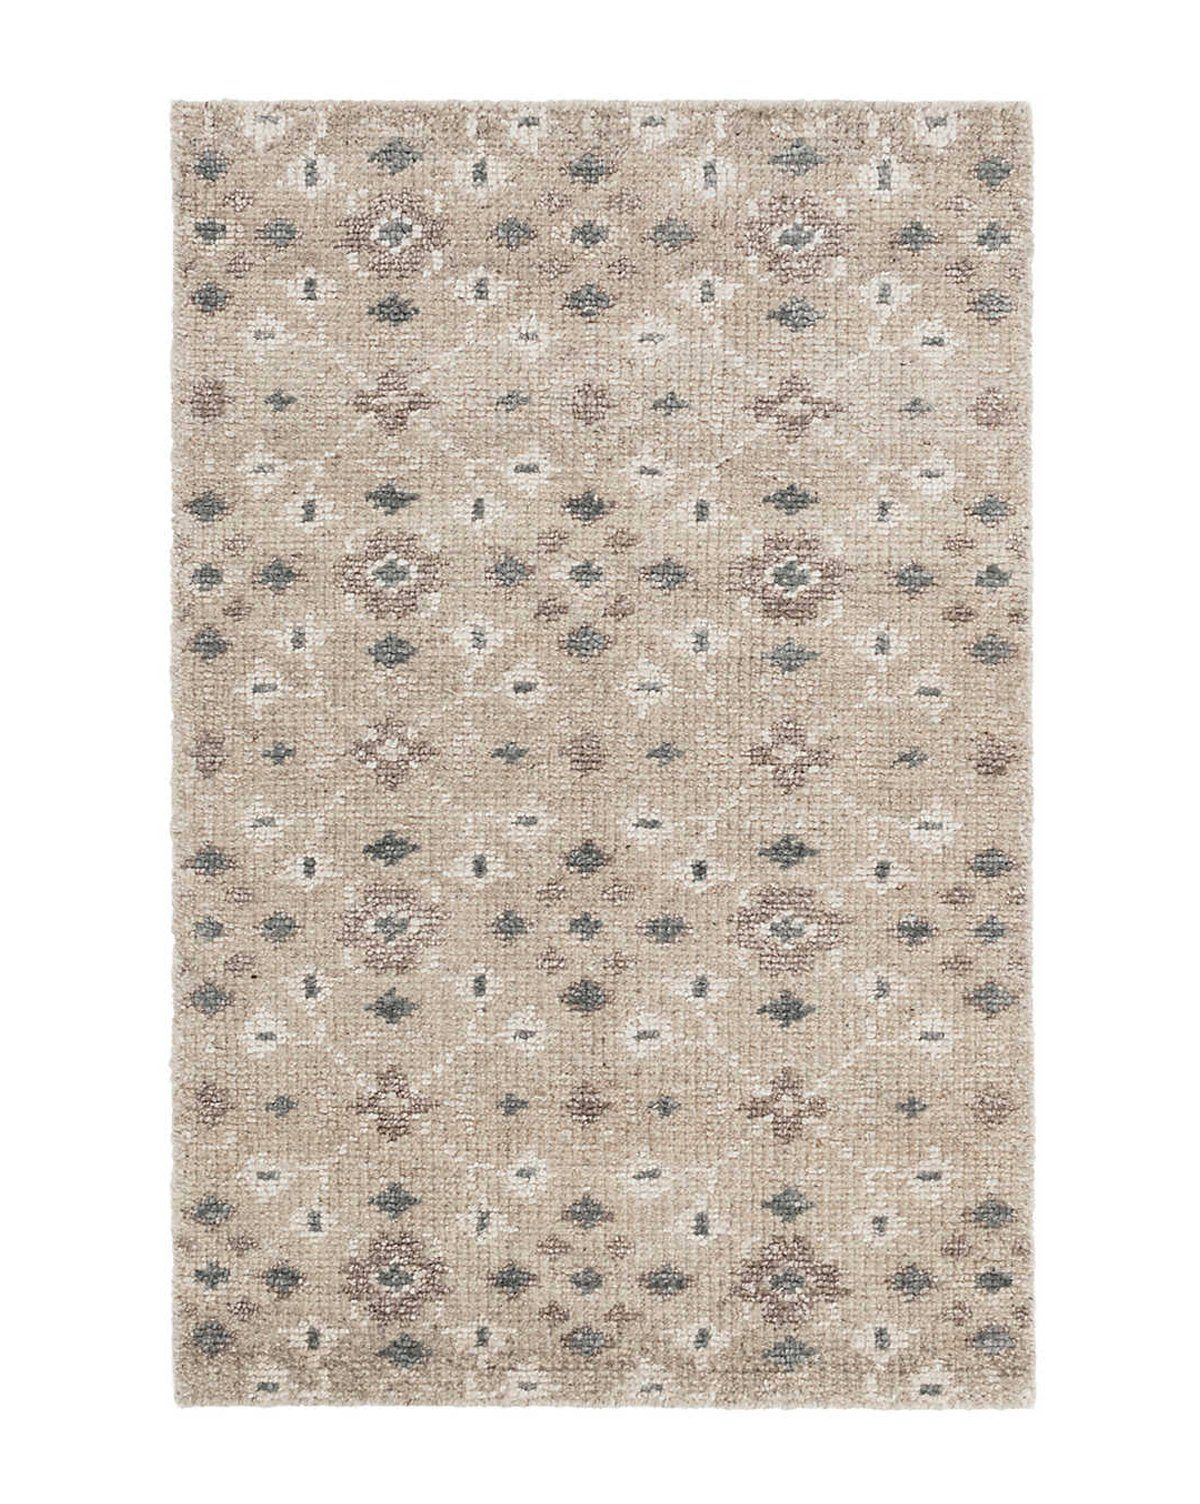 Florence Hand Knotted Rug Mcgee Co Hand Knotted Rugs Rugs Rug Pattern